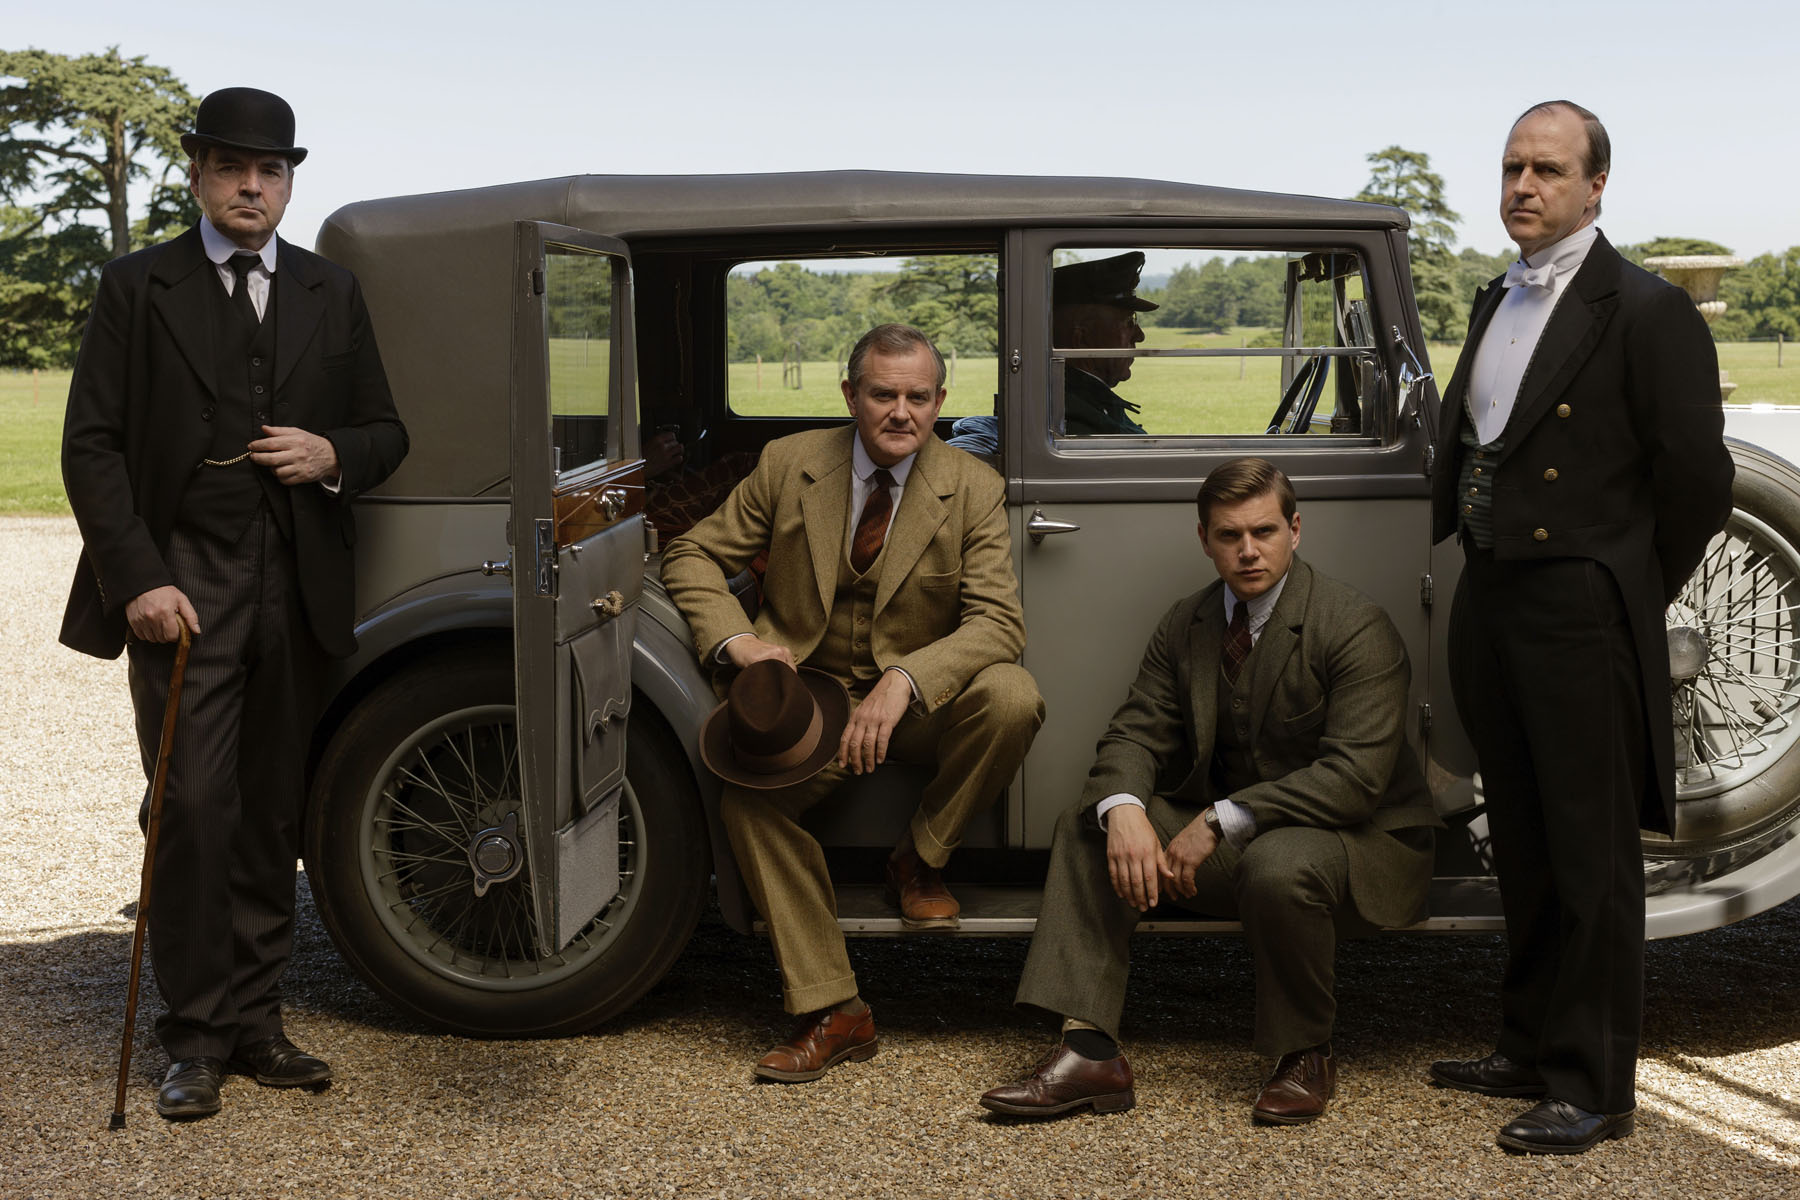 Brendan Coyle as Bates, Hugh Bonneville as Lord Grantham, Allen Leech as Tom Branson, and Kevin Doyle as Molesley Photo by (C) Nick Briggs/Carnival Film & Television Limited 2015 for MASTERPIECE)